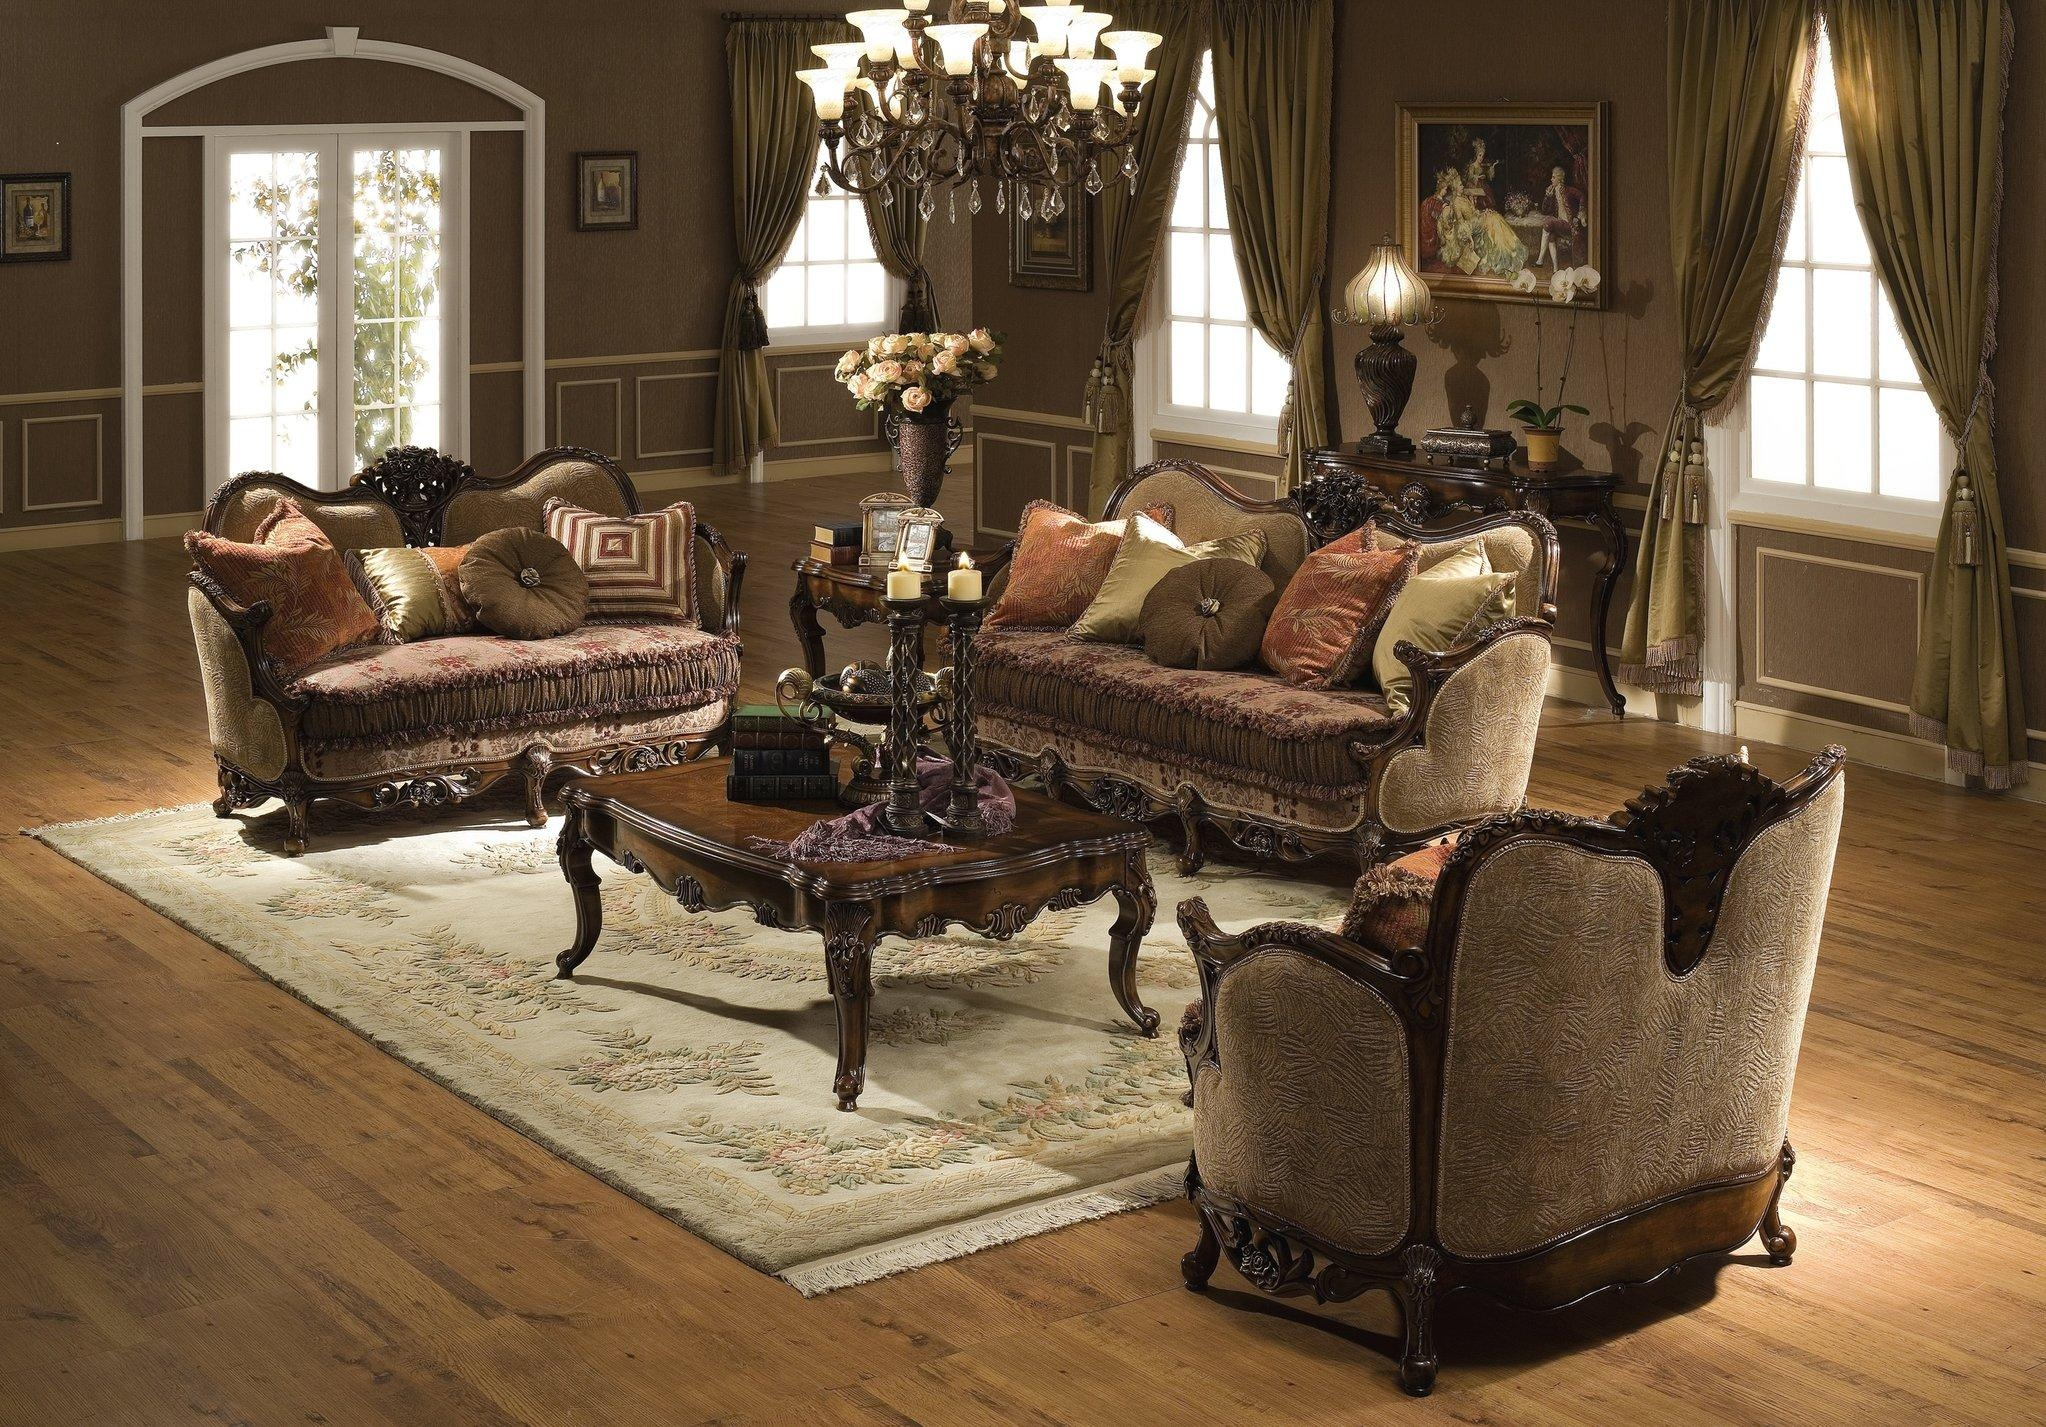 Astonishing Traditional Sectional Sofas Living Room Furniture 62 With Regard To Bradley Sectional Sofas (View 15 of 20)